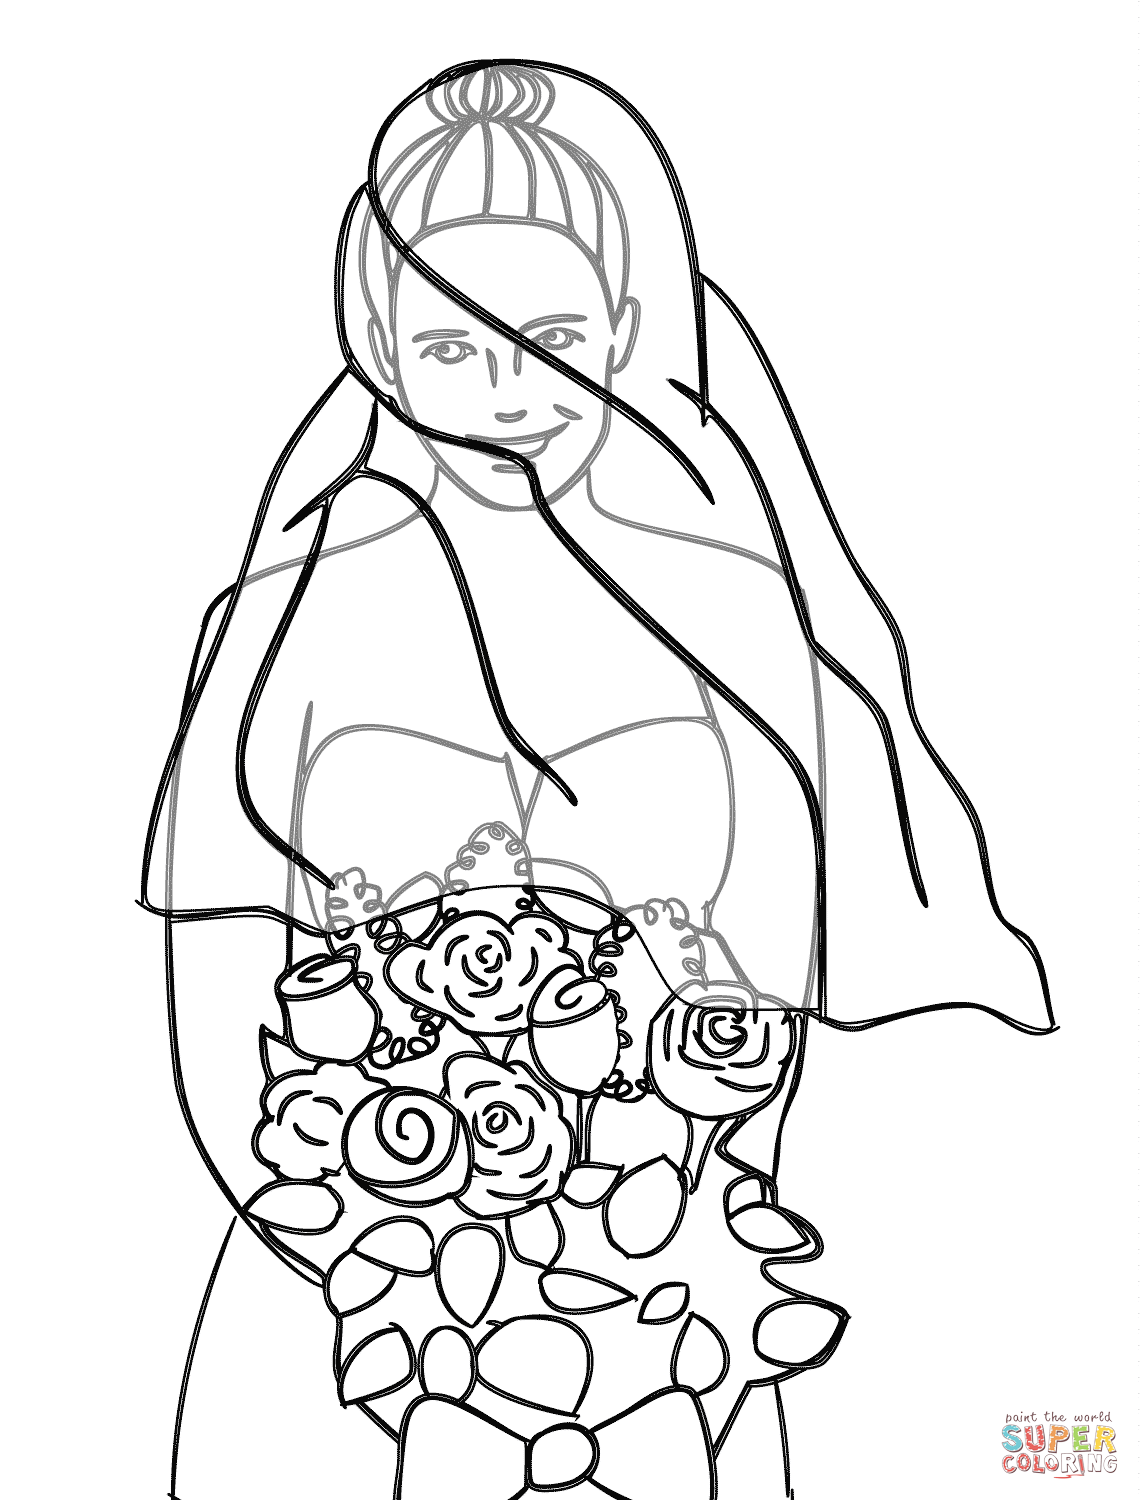 - Wedding Dress Coloring Pages Png & Free Wedding Dress Coloring